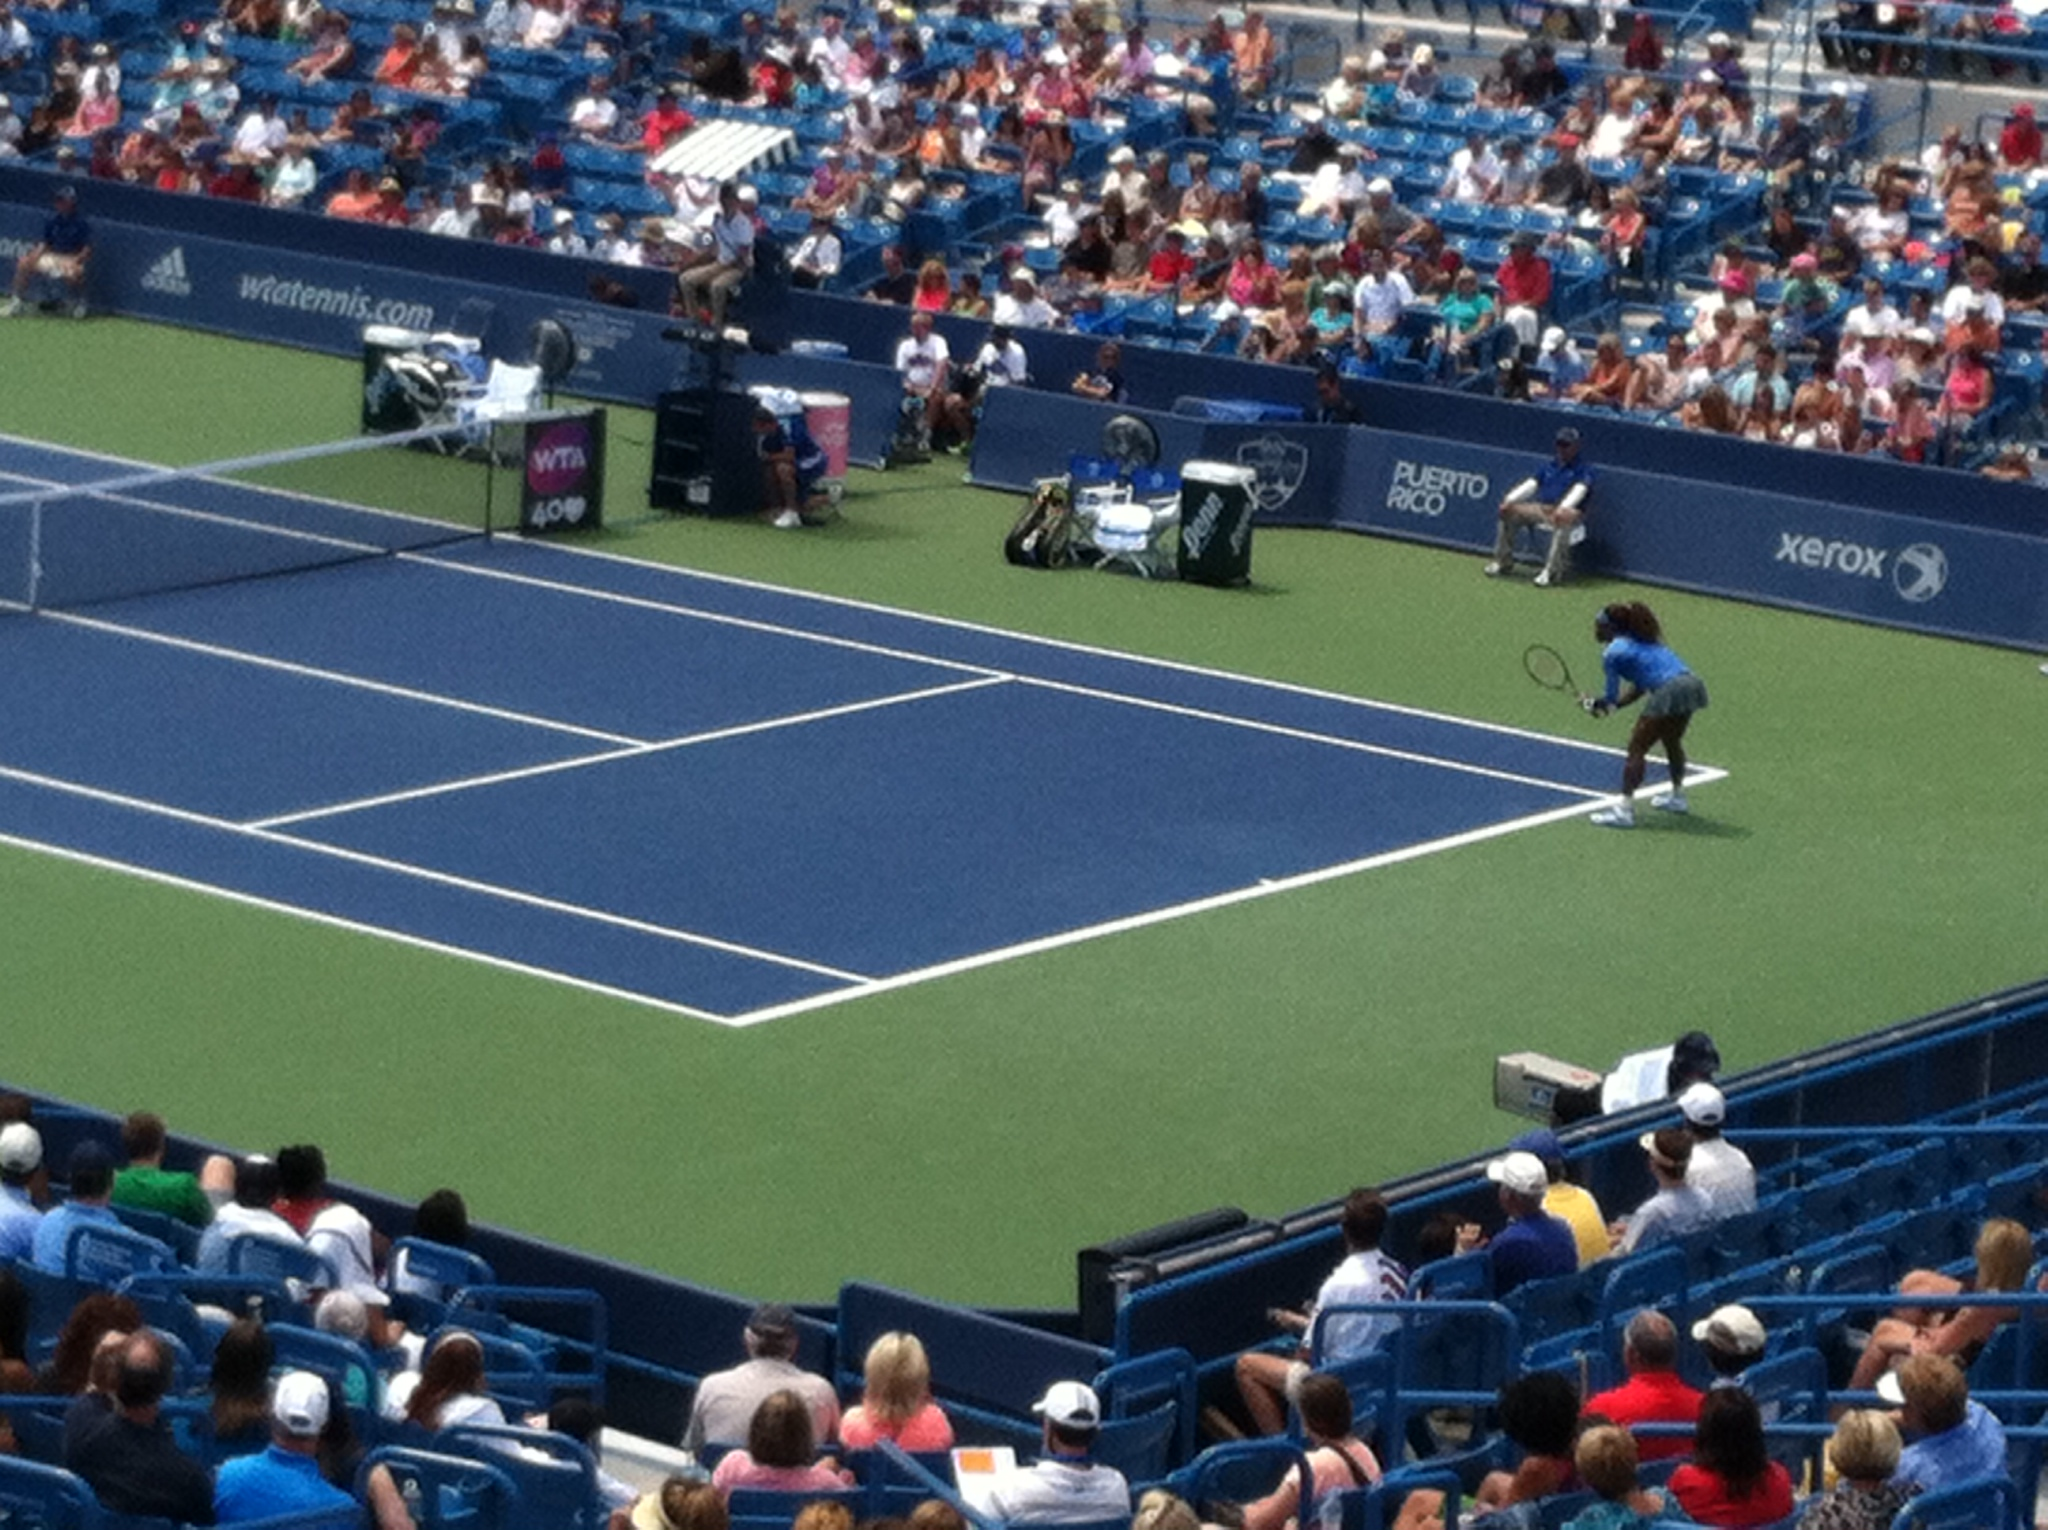 Outdoor sports the coolibar sun protection blog a glimpse of serena williams at the western southern tennis open buycottarizona